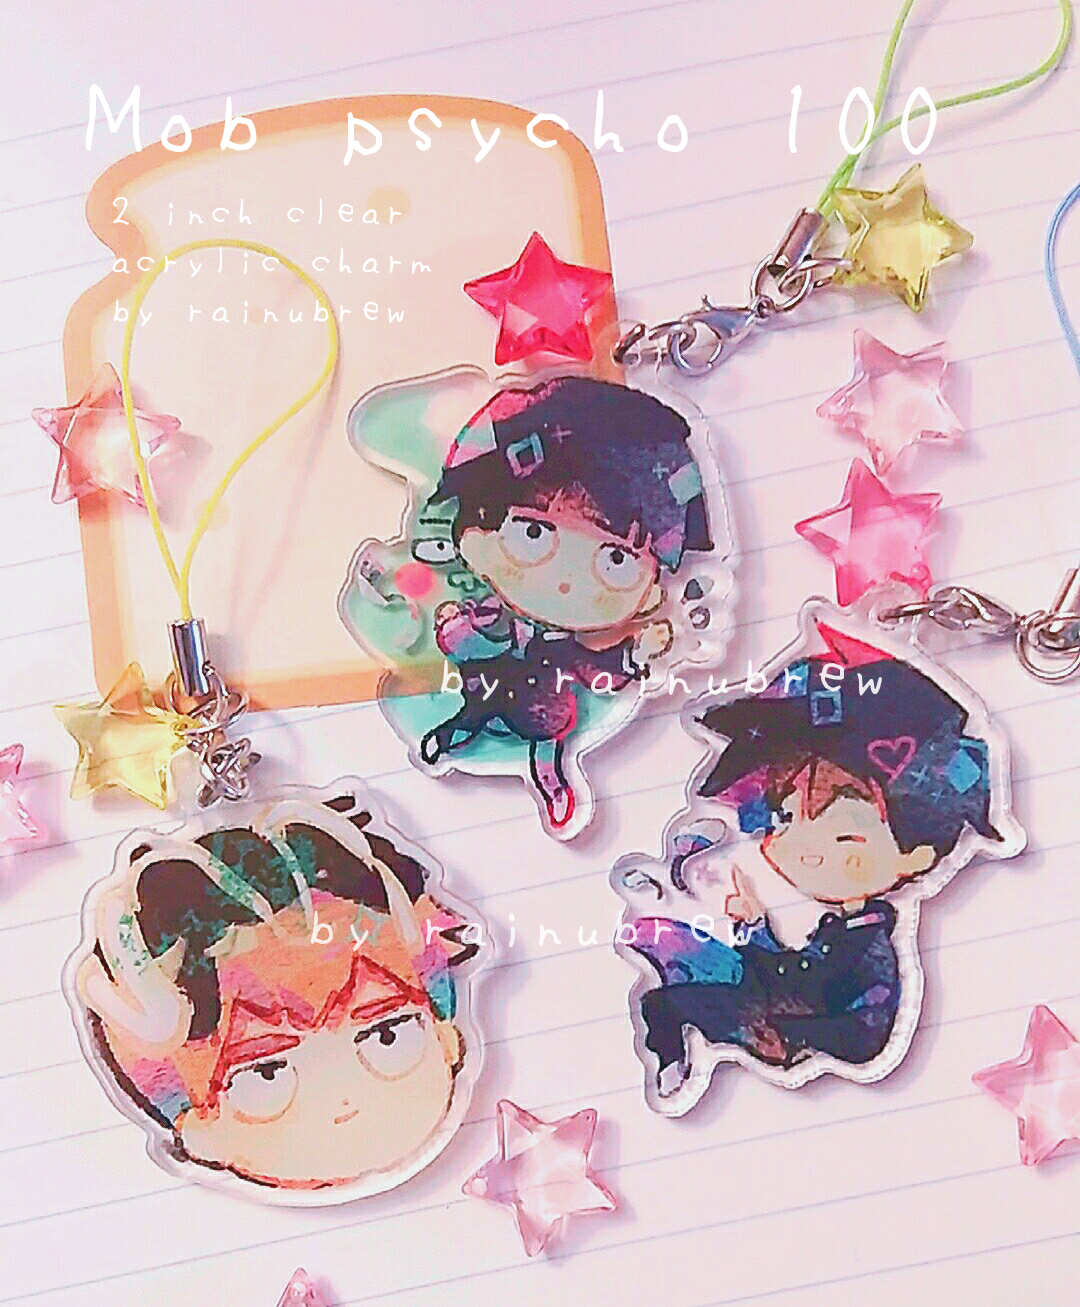 Image of mob psycho 100 | 2 inch charms